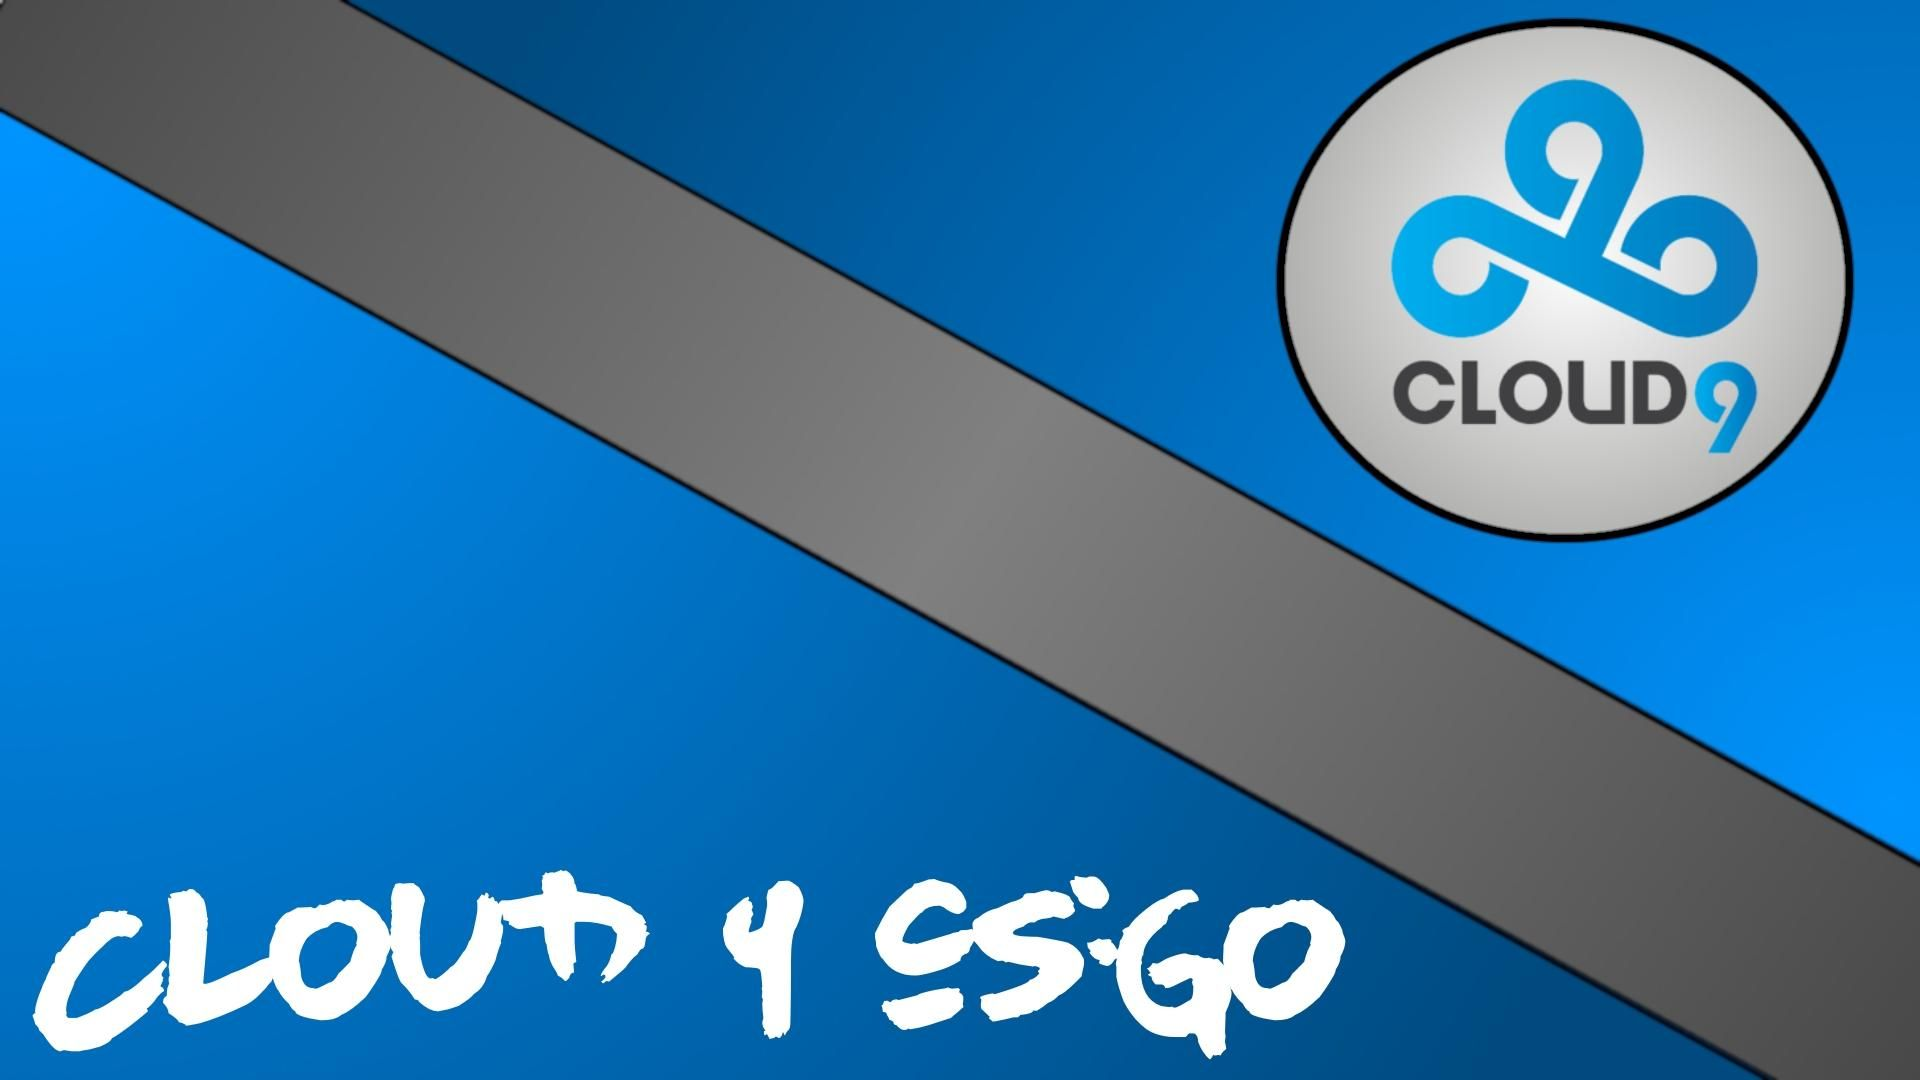 First Attempt To Make My Own Wallpaper Cloud 9 Theme Cloud 9 Wallpaper Clouds